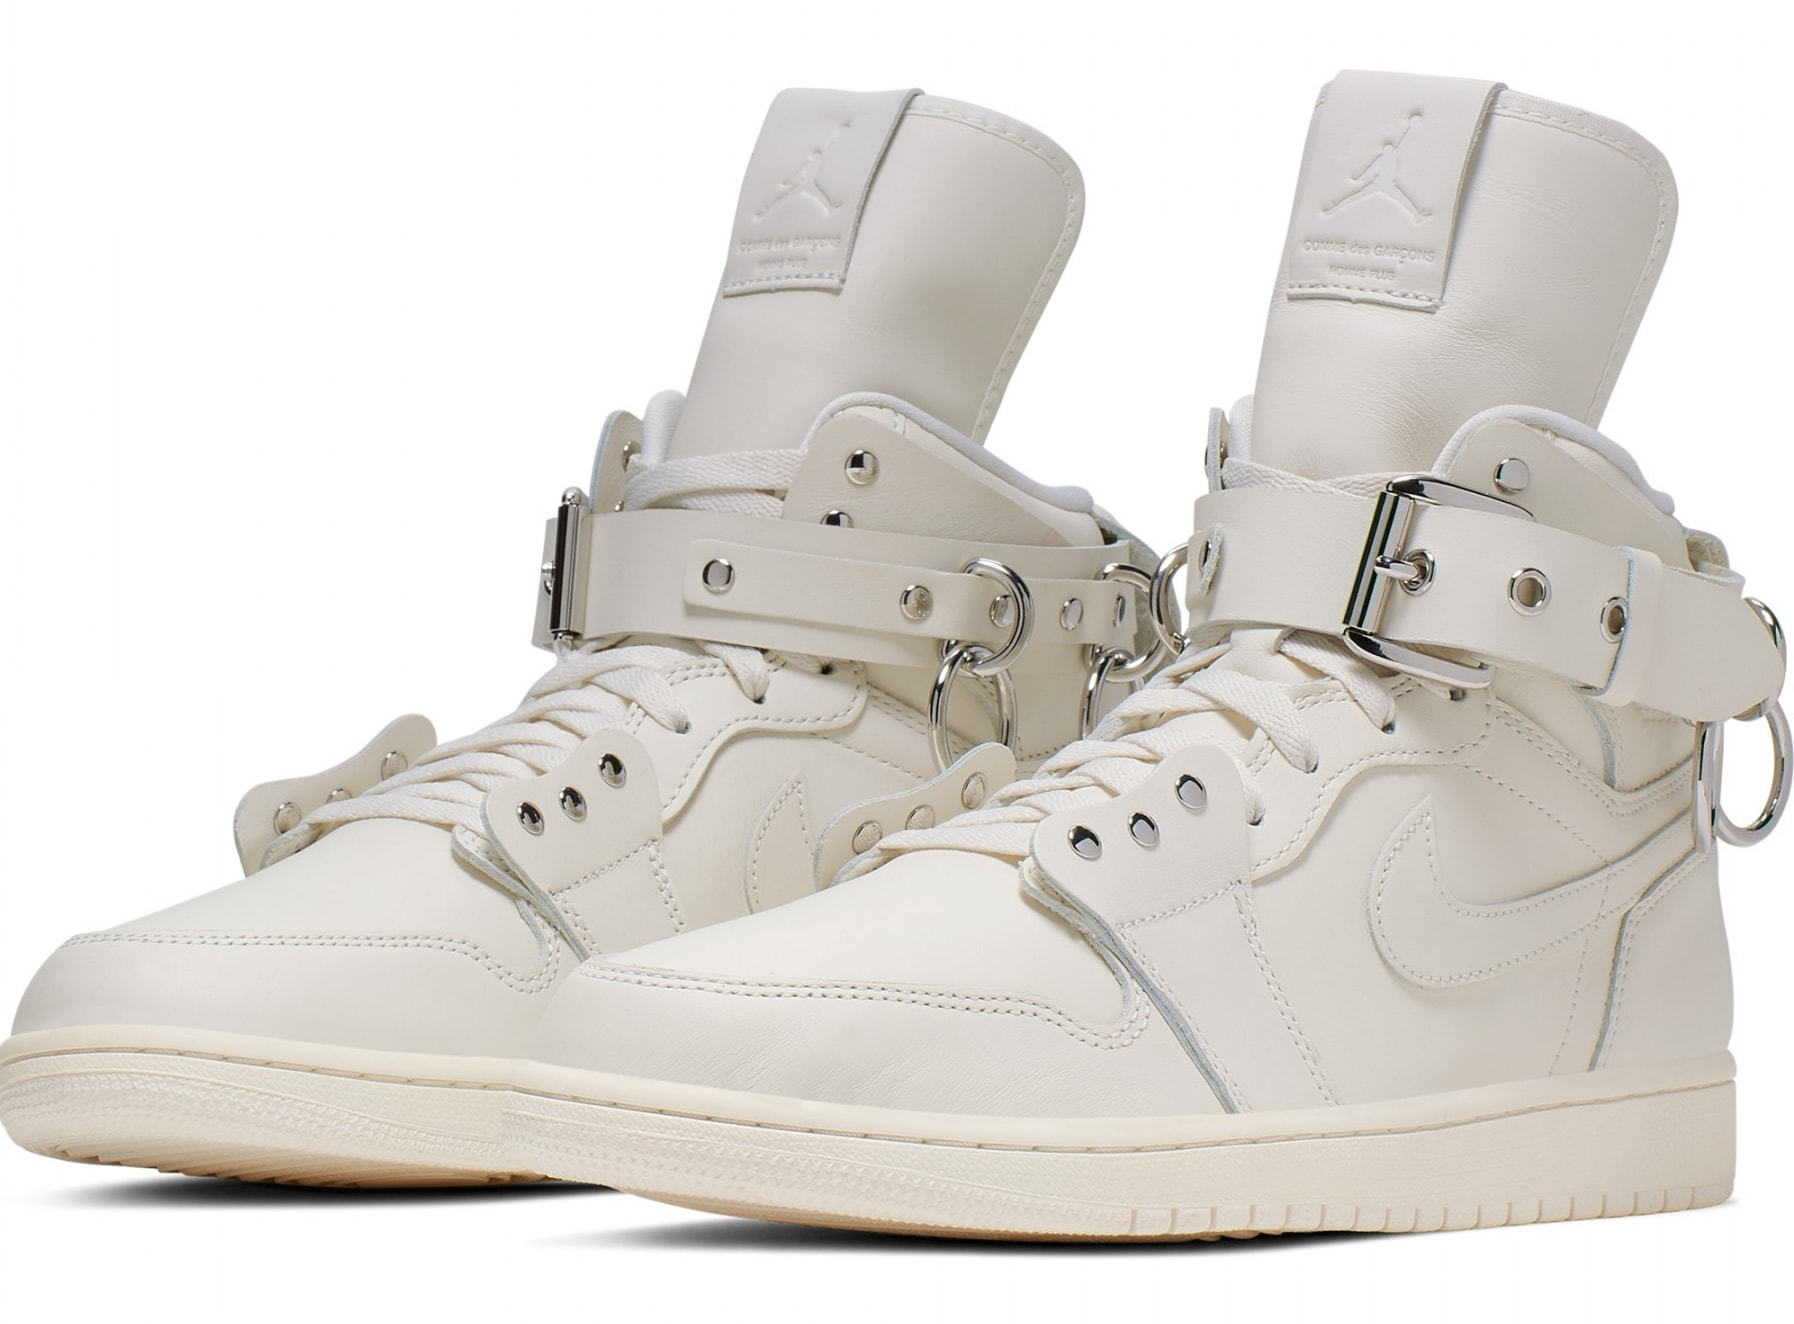 comme-des-garcons-air-jordan-1-high-white-cn5738-100-pair